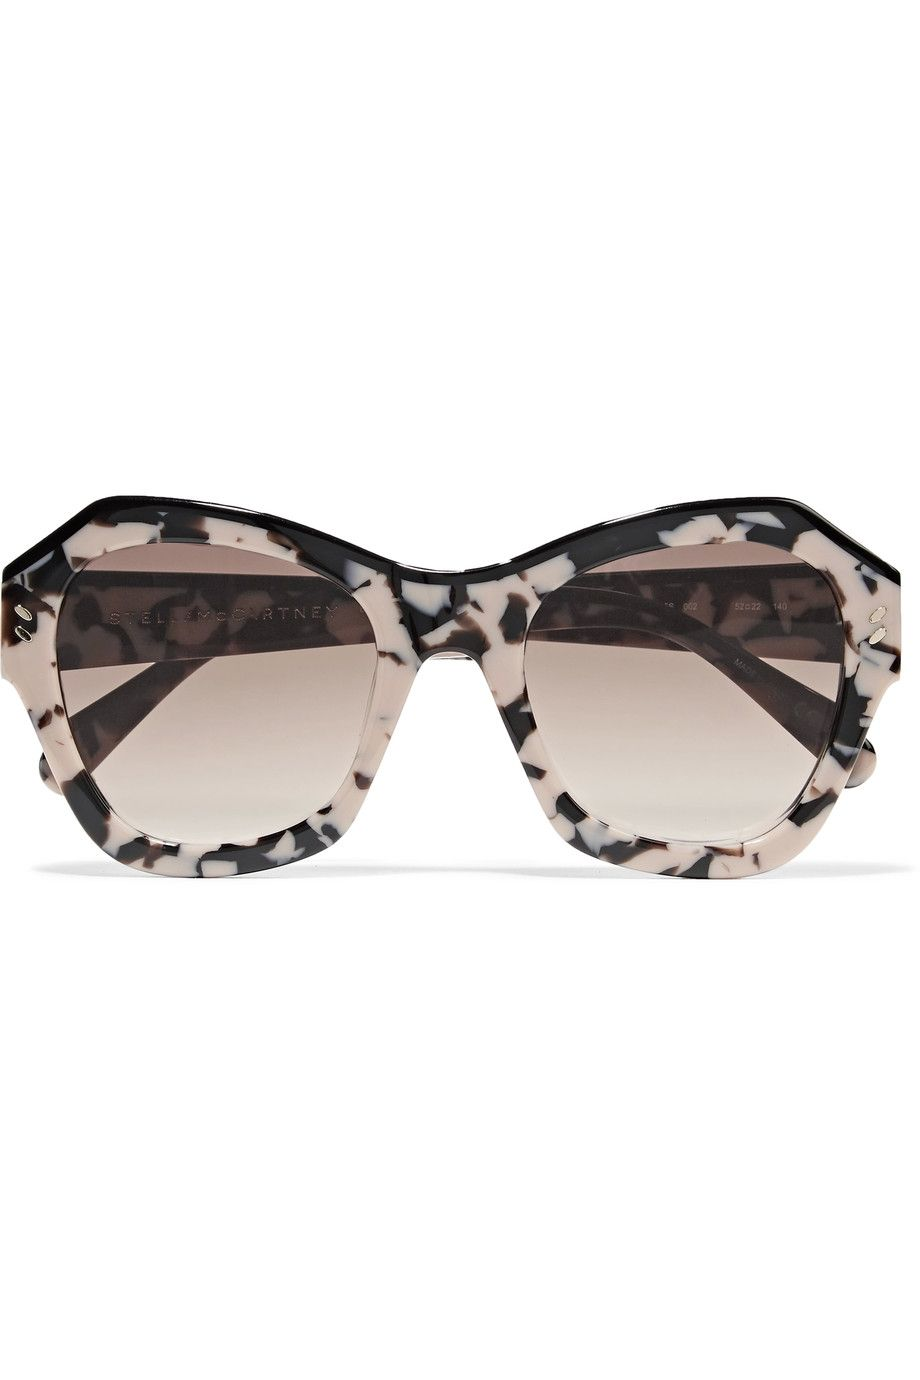 60a7f2da8625 STELLA MCCARTNEY D-frame acetate mirrored sunglasses.  stellamccartney